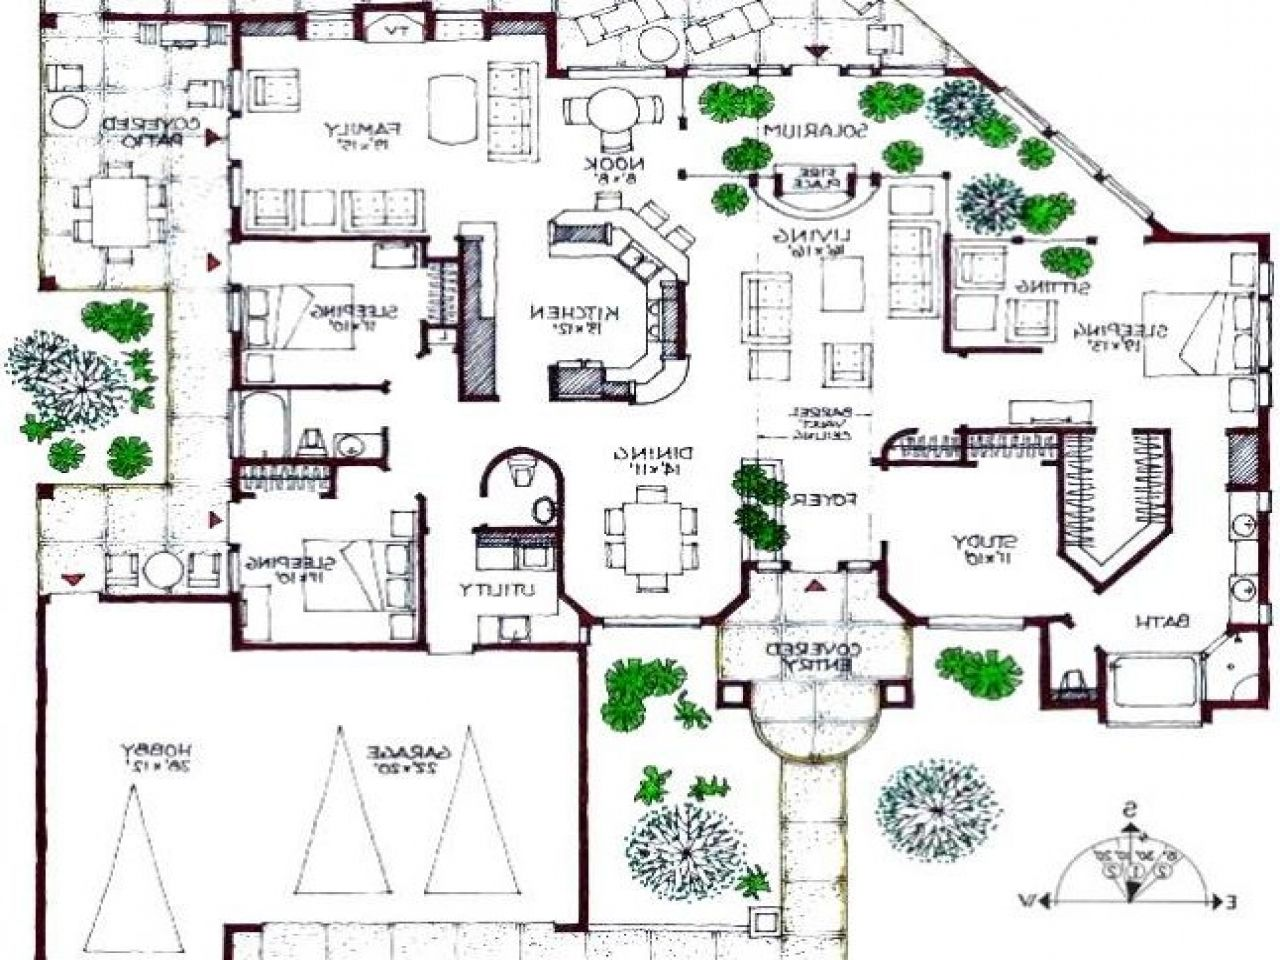 Modern Homes Floorplans Ultra Modern House Design Floor Plans Floor Plans